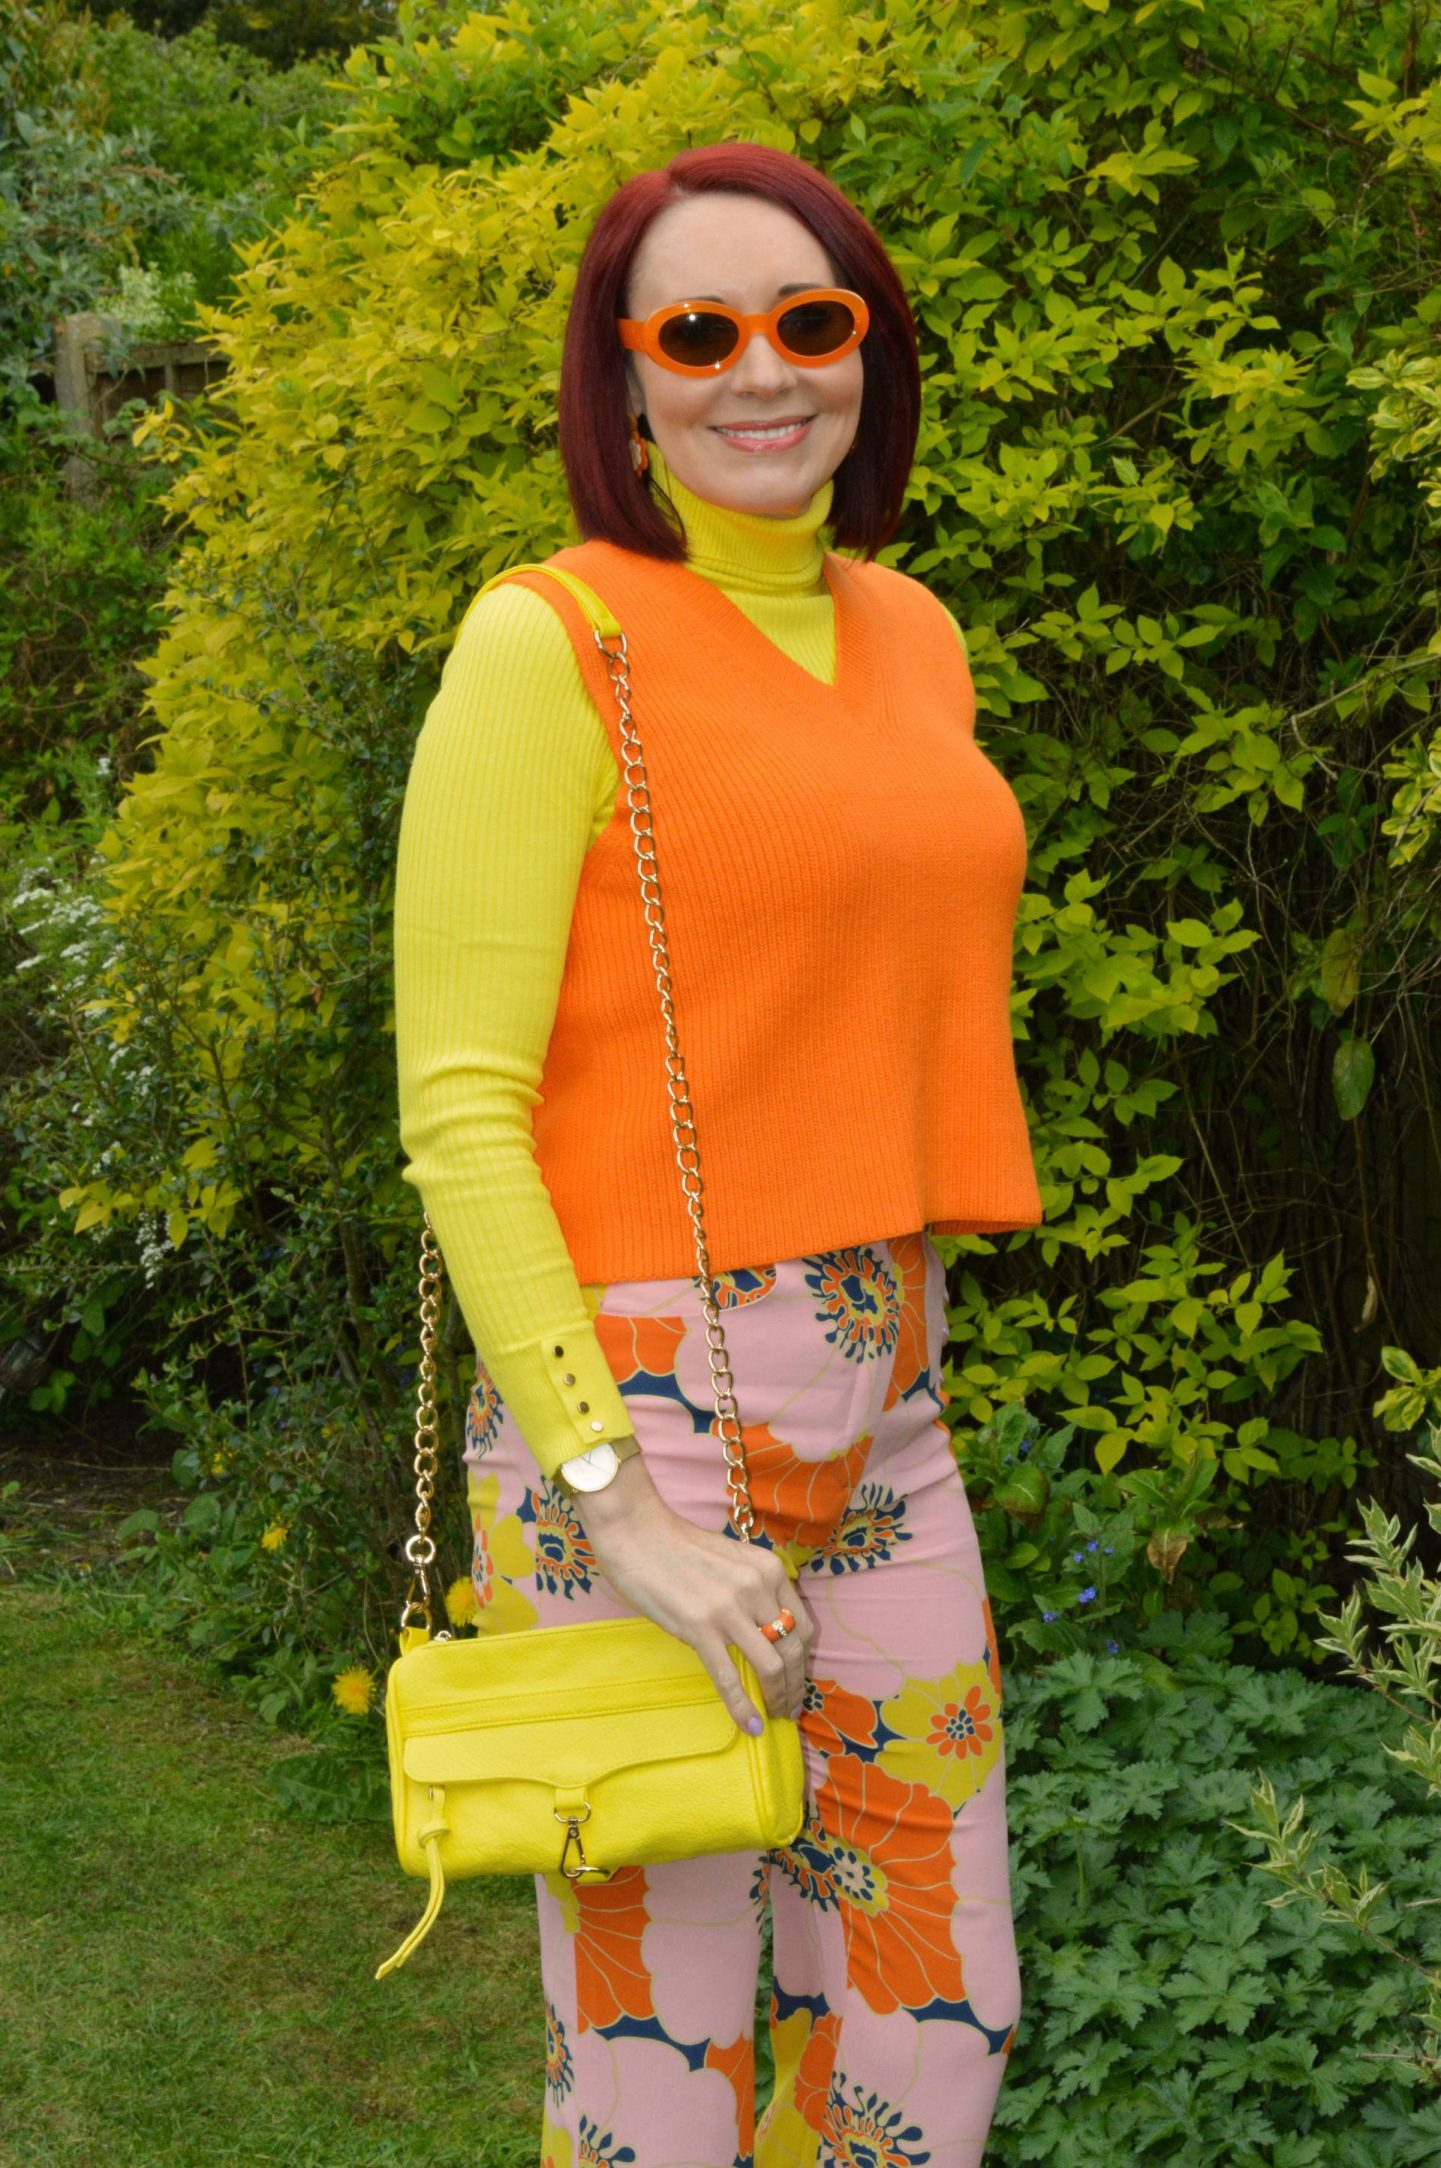 Zara orange knitted vest, New Look yellow ribbed jumper, Zara orange frame sunglasses